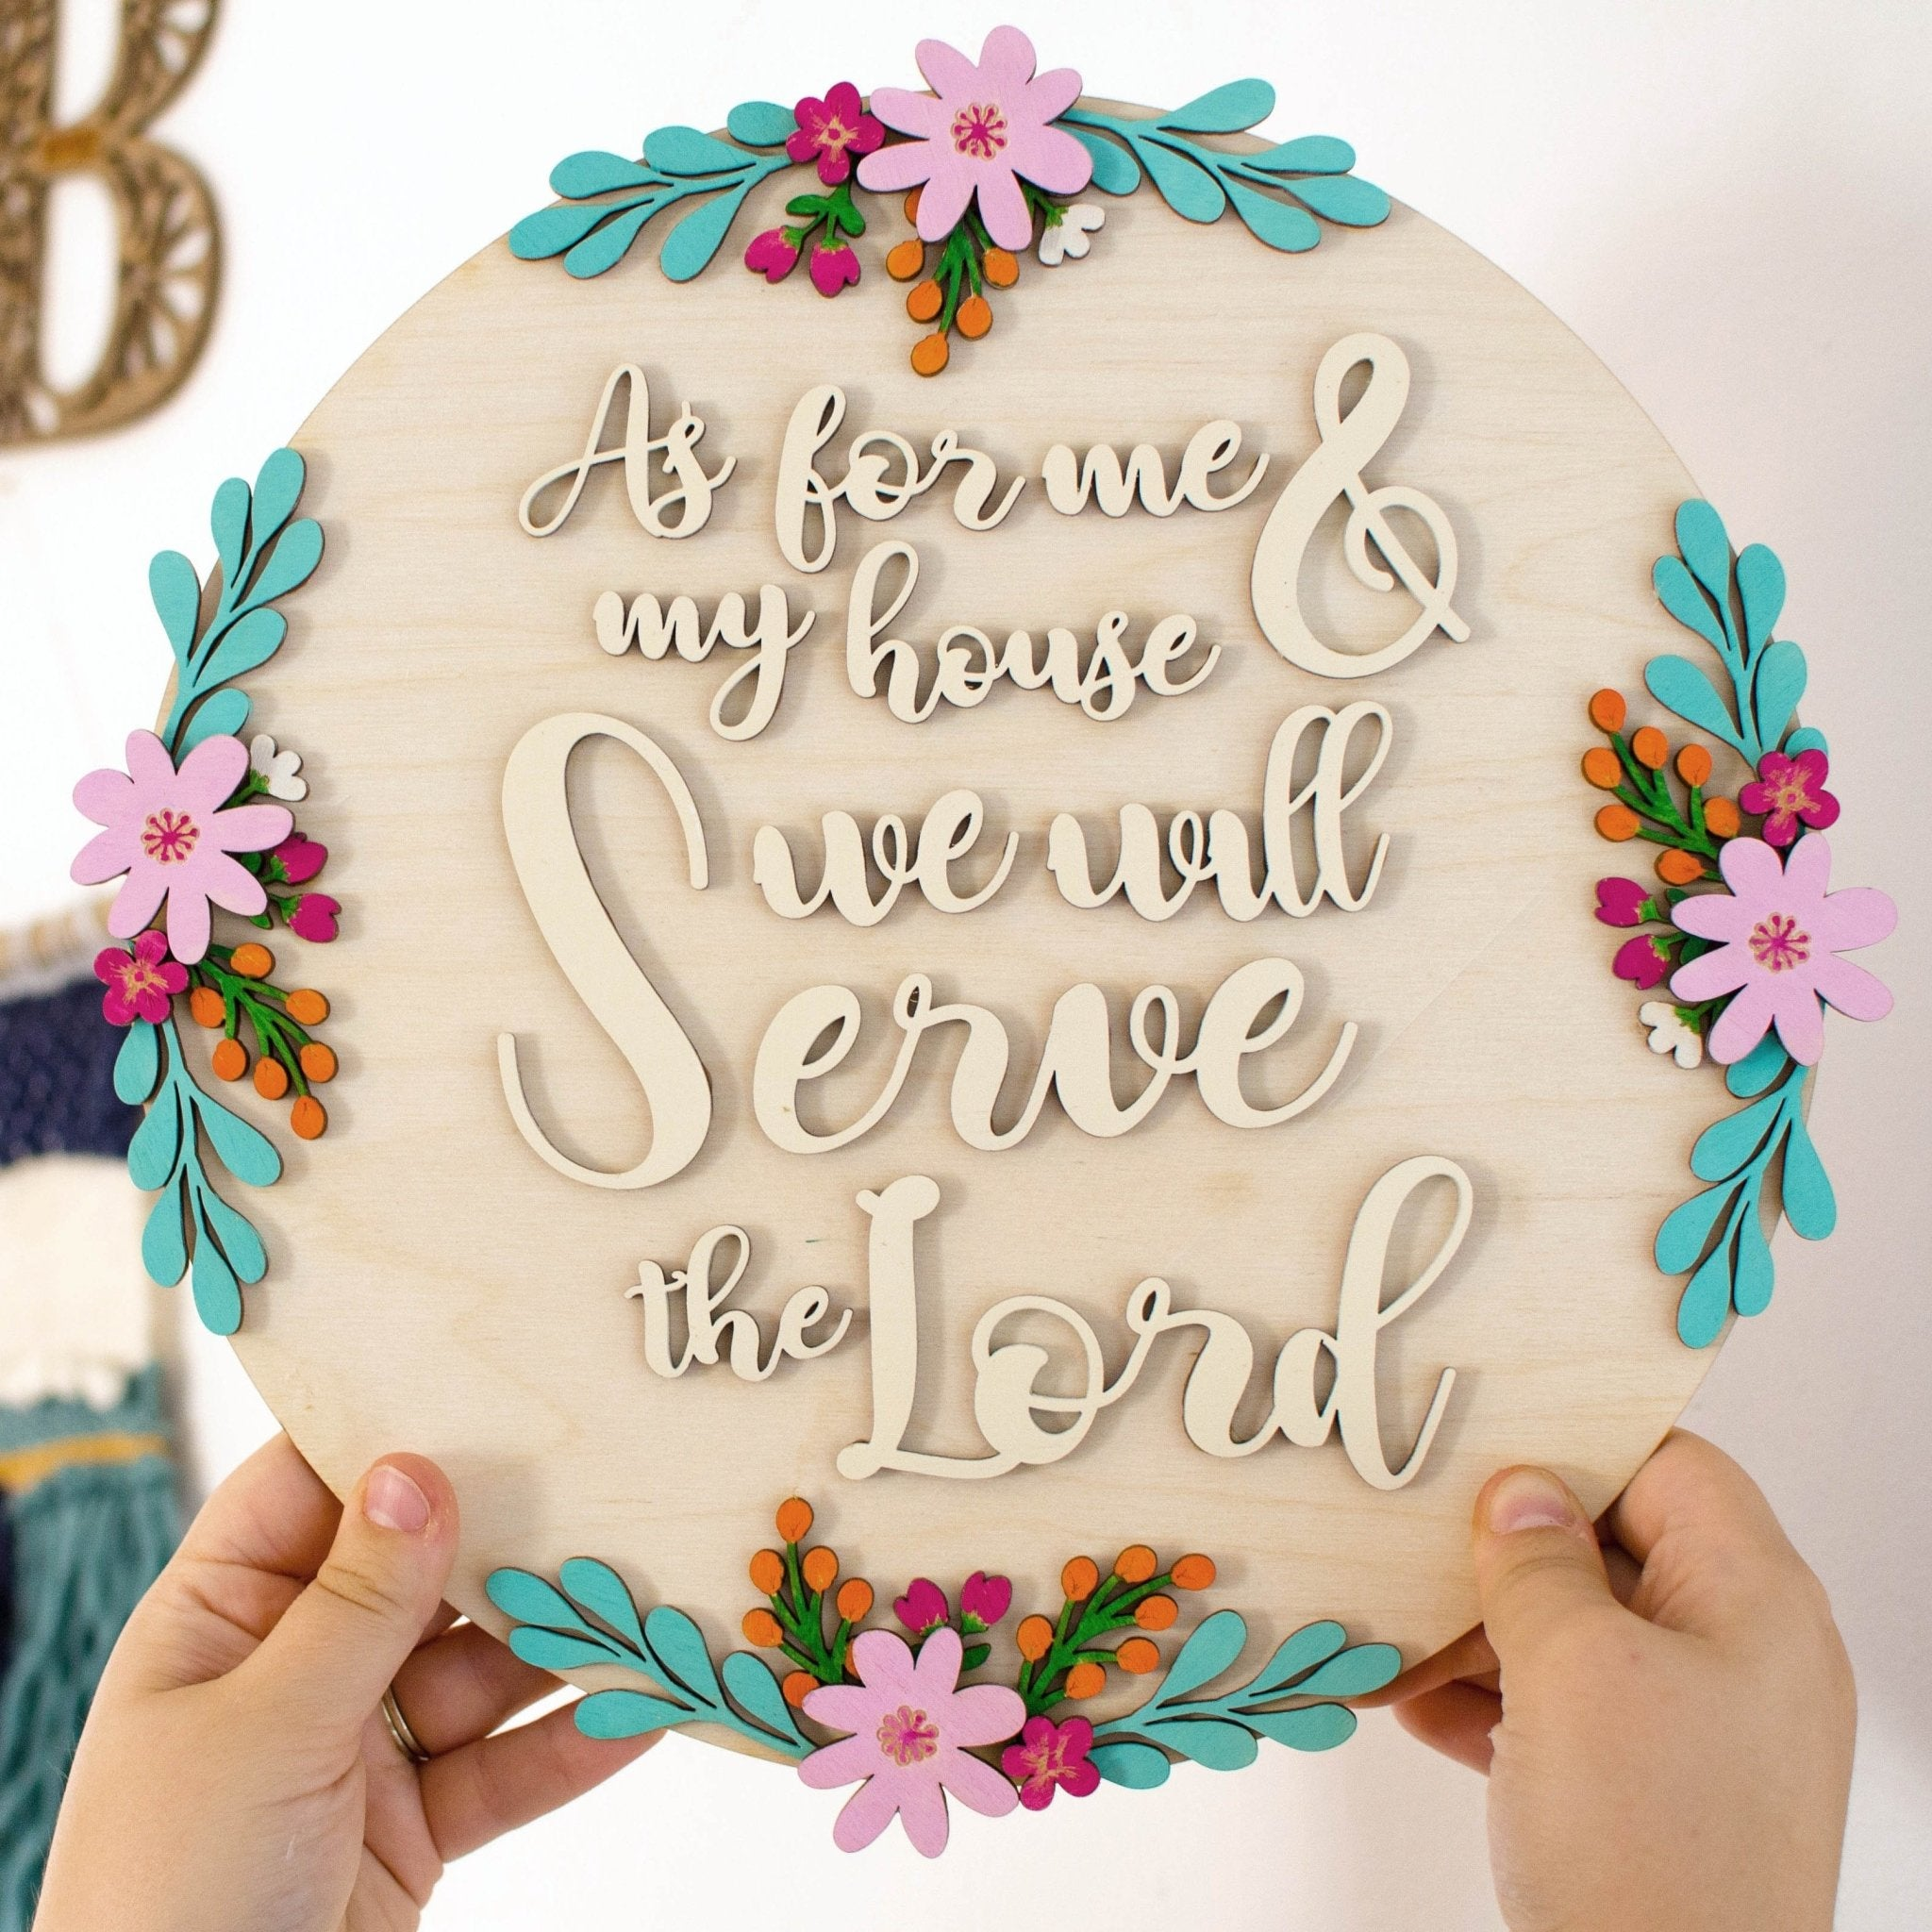 Me & my house wooden floral wall plaque Joshua 24:15